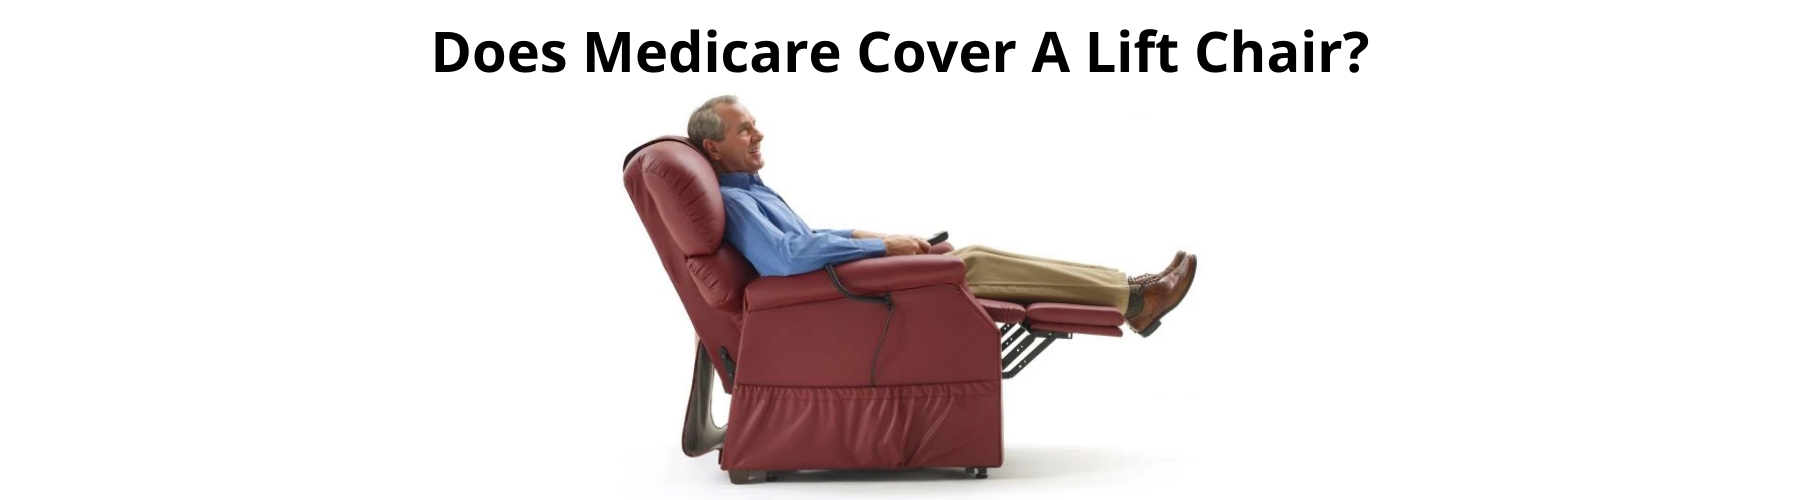 Does Medicare Cover A Lift Chair?